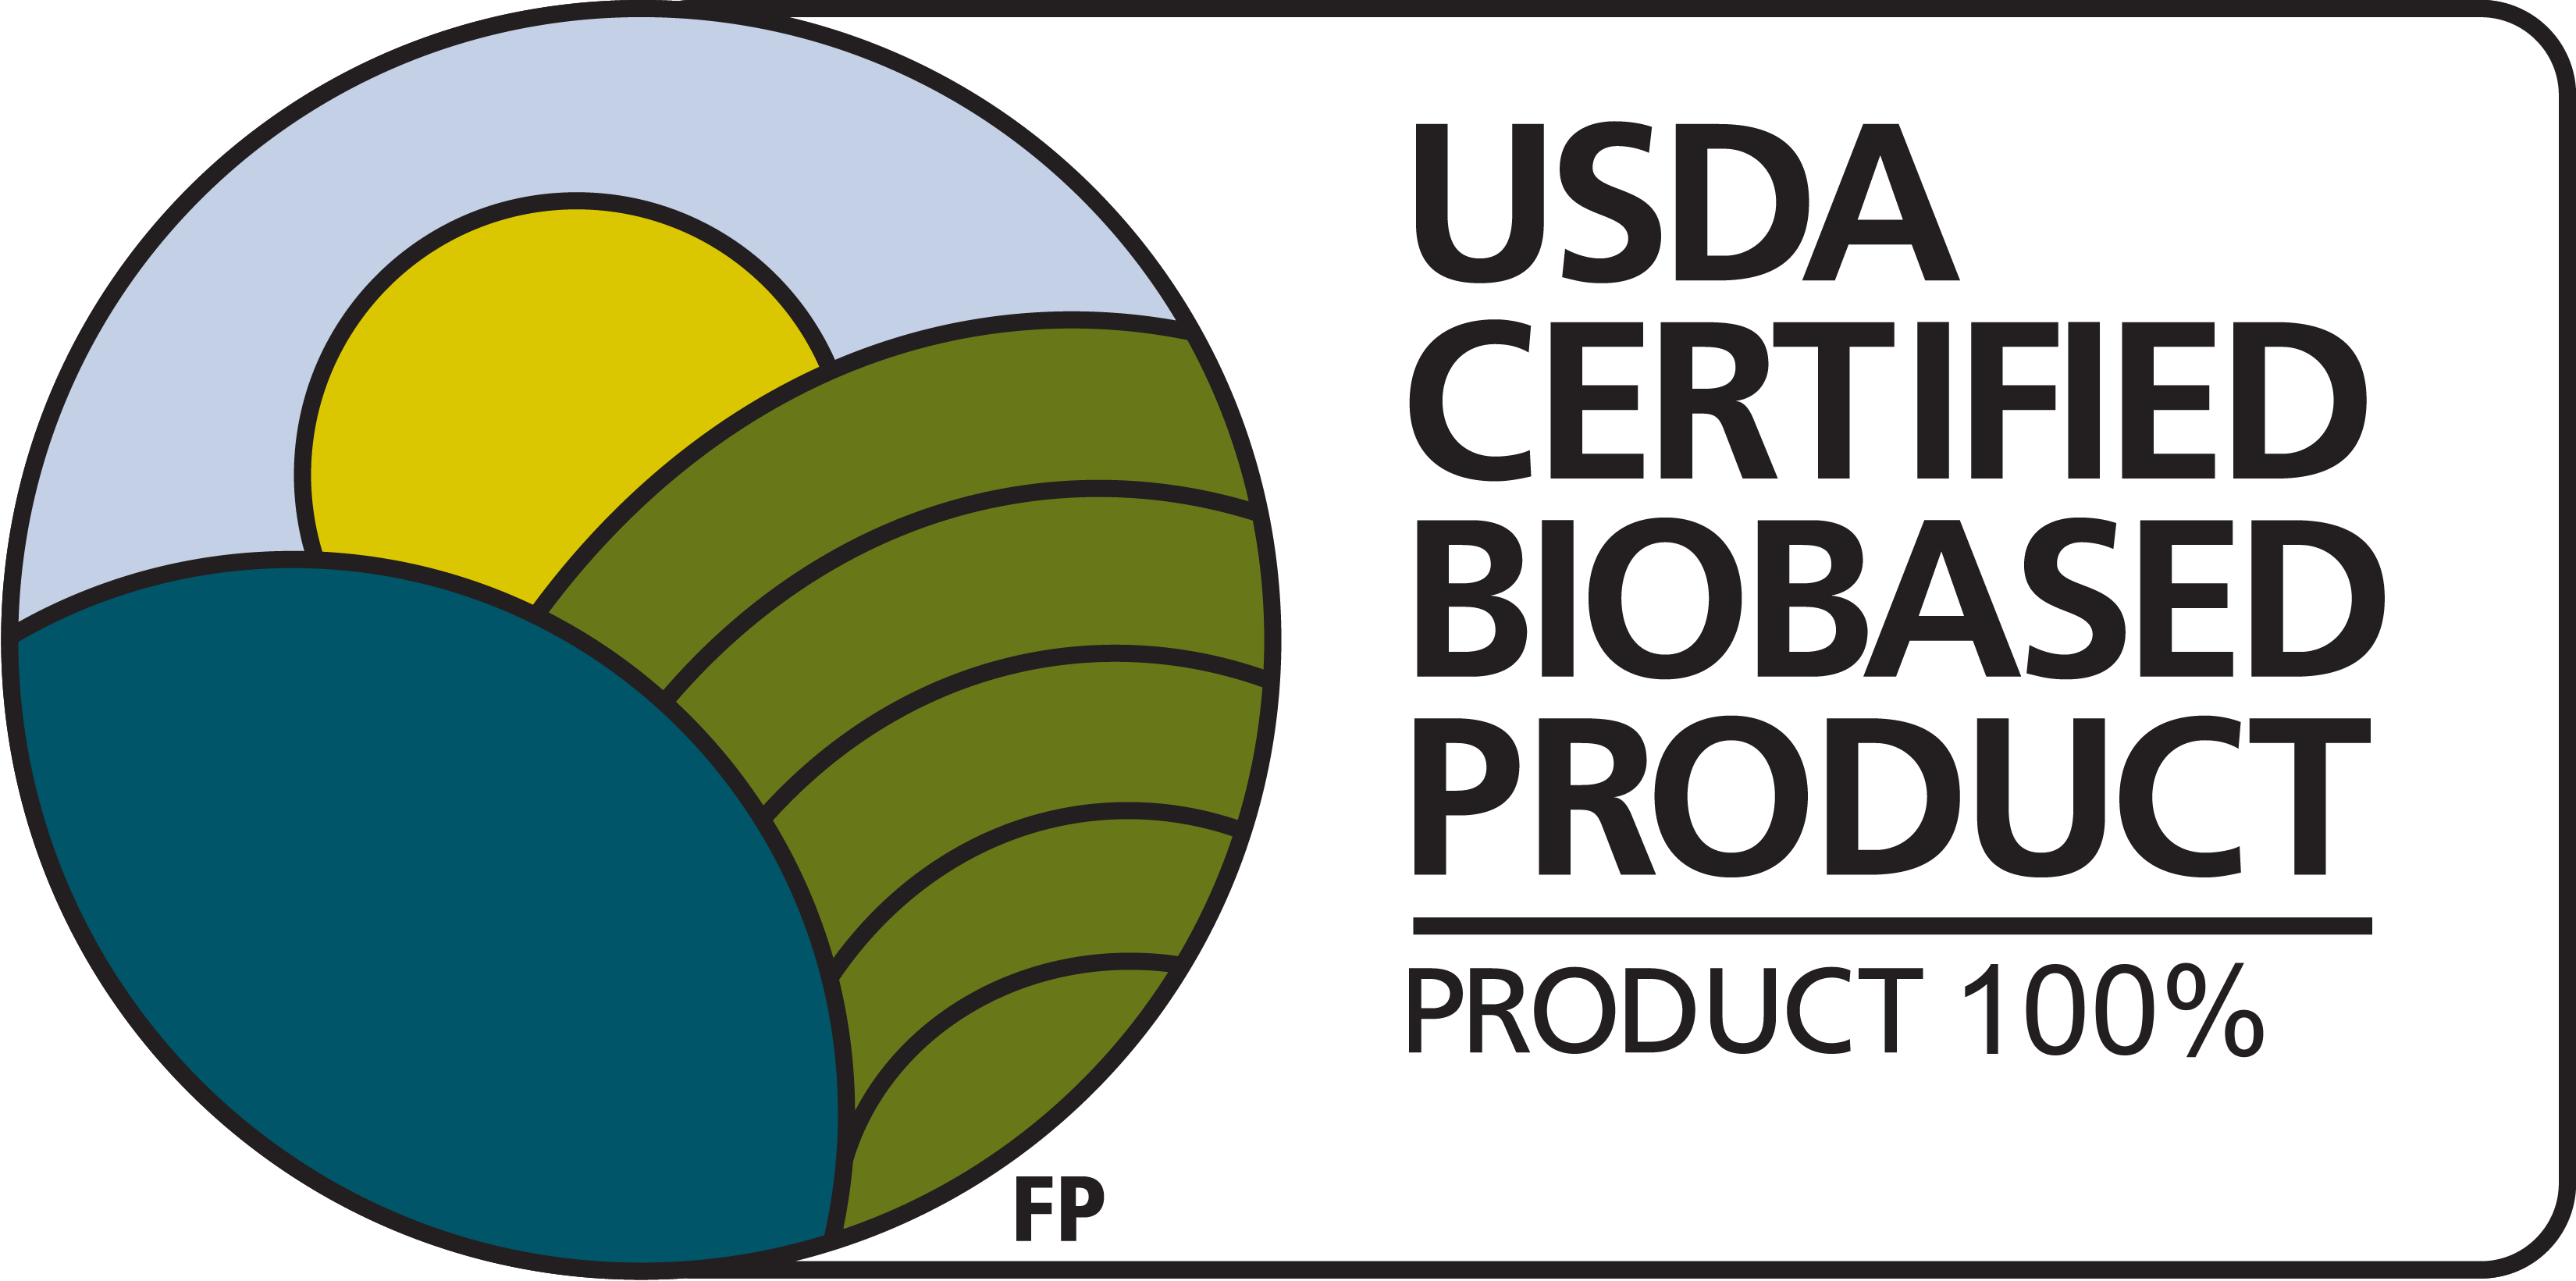 USDA Certified Biobased Product Label for Honest Organic Body Oil